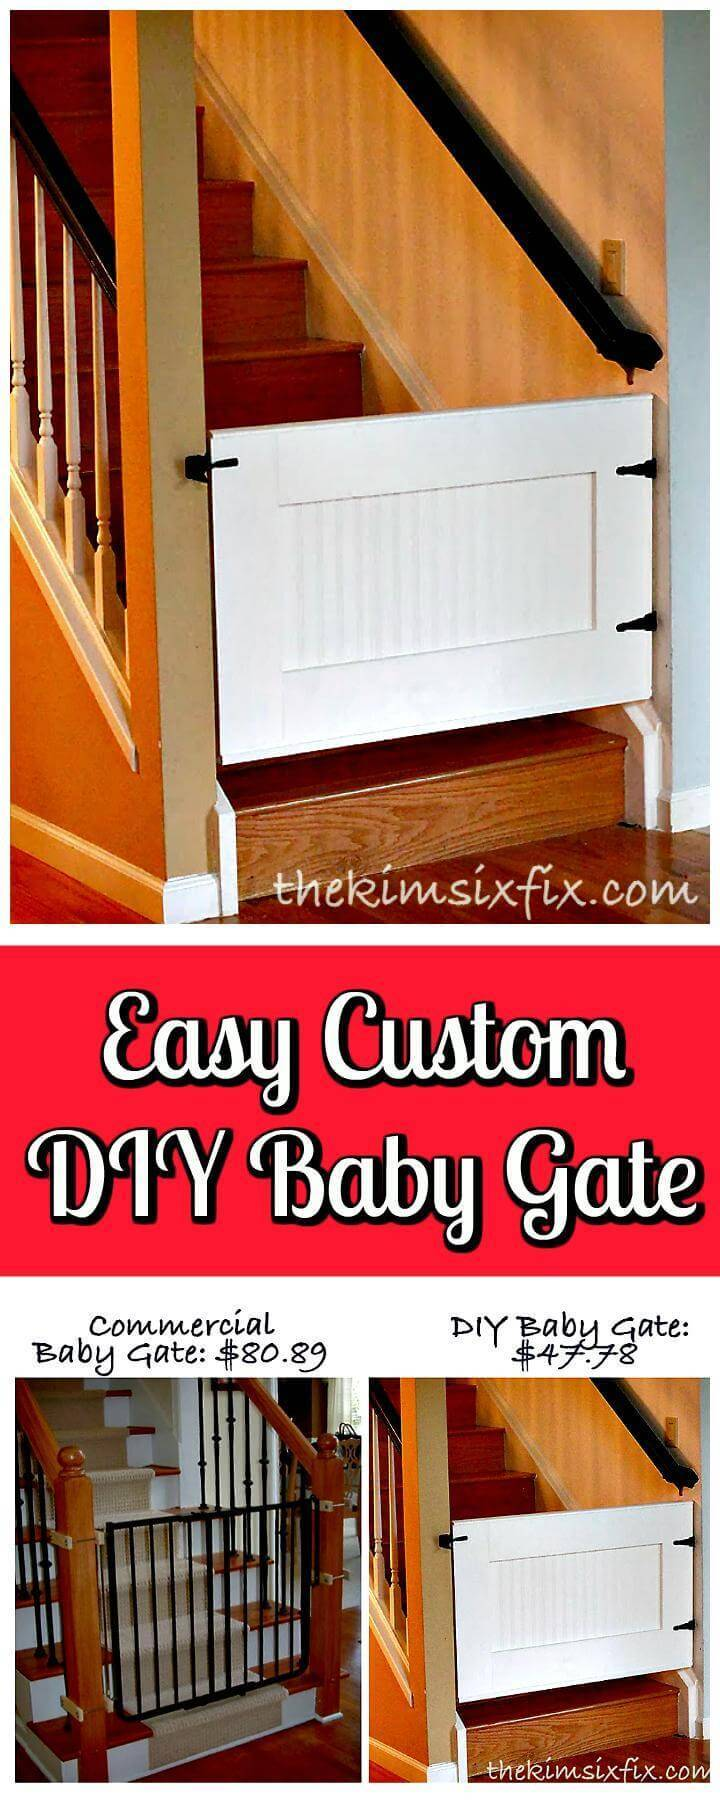 30 Best Diy Baby Gate Plans For Free Ultimate Guide